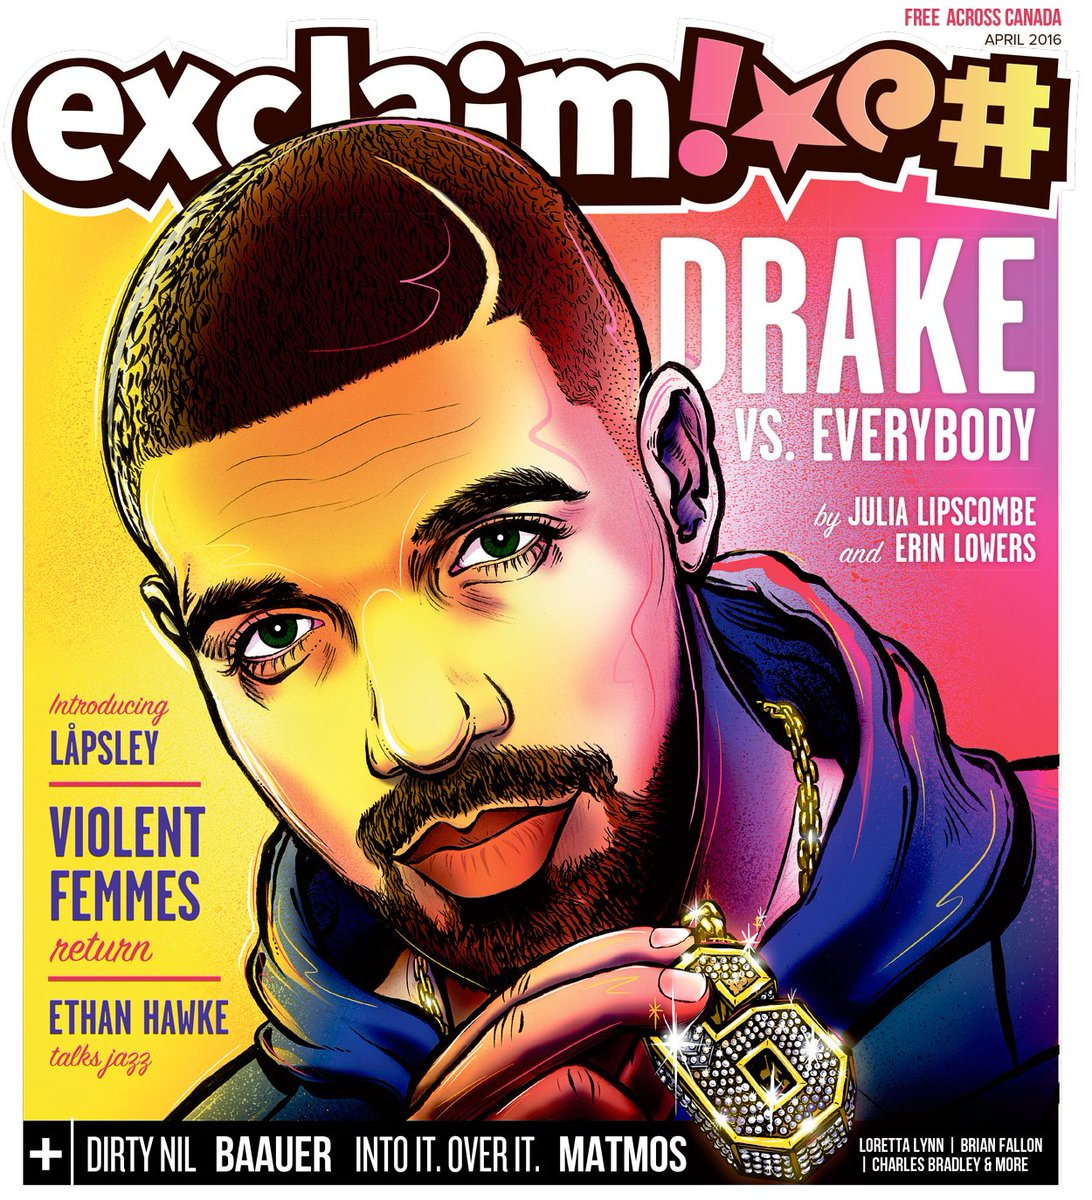 2016 is Drake's year. Then again, so were the last six. Read our new issue to find out why: https://t.co/g0iquX5MEn https://t.co/CUobiMPFdb